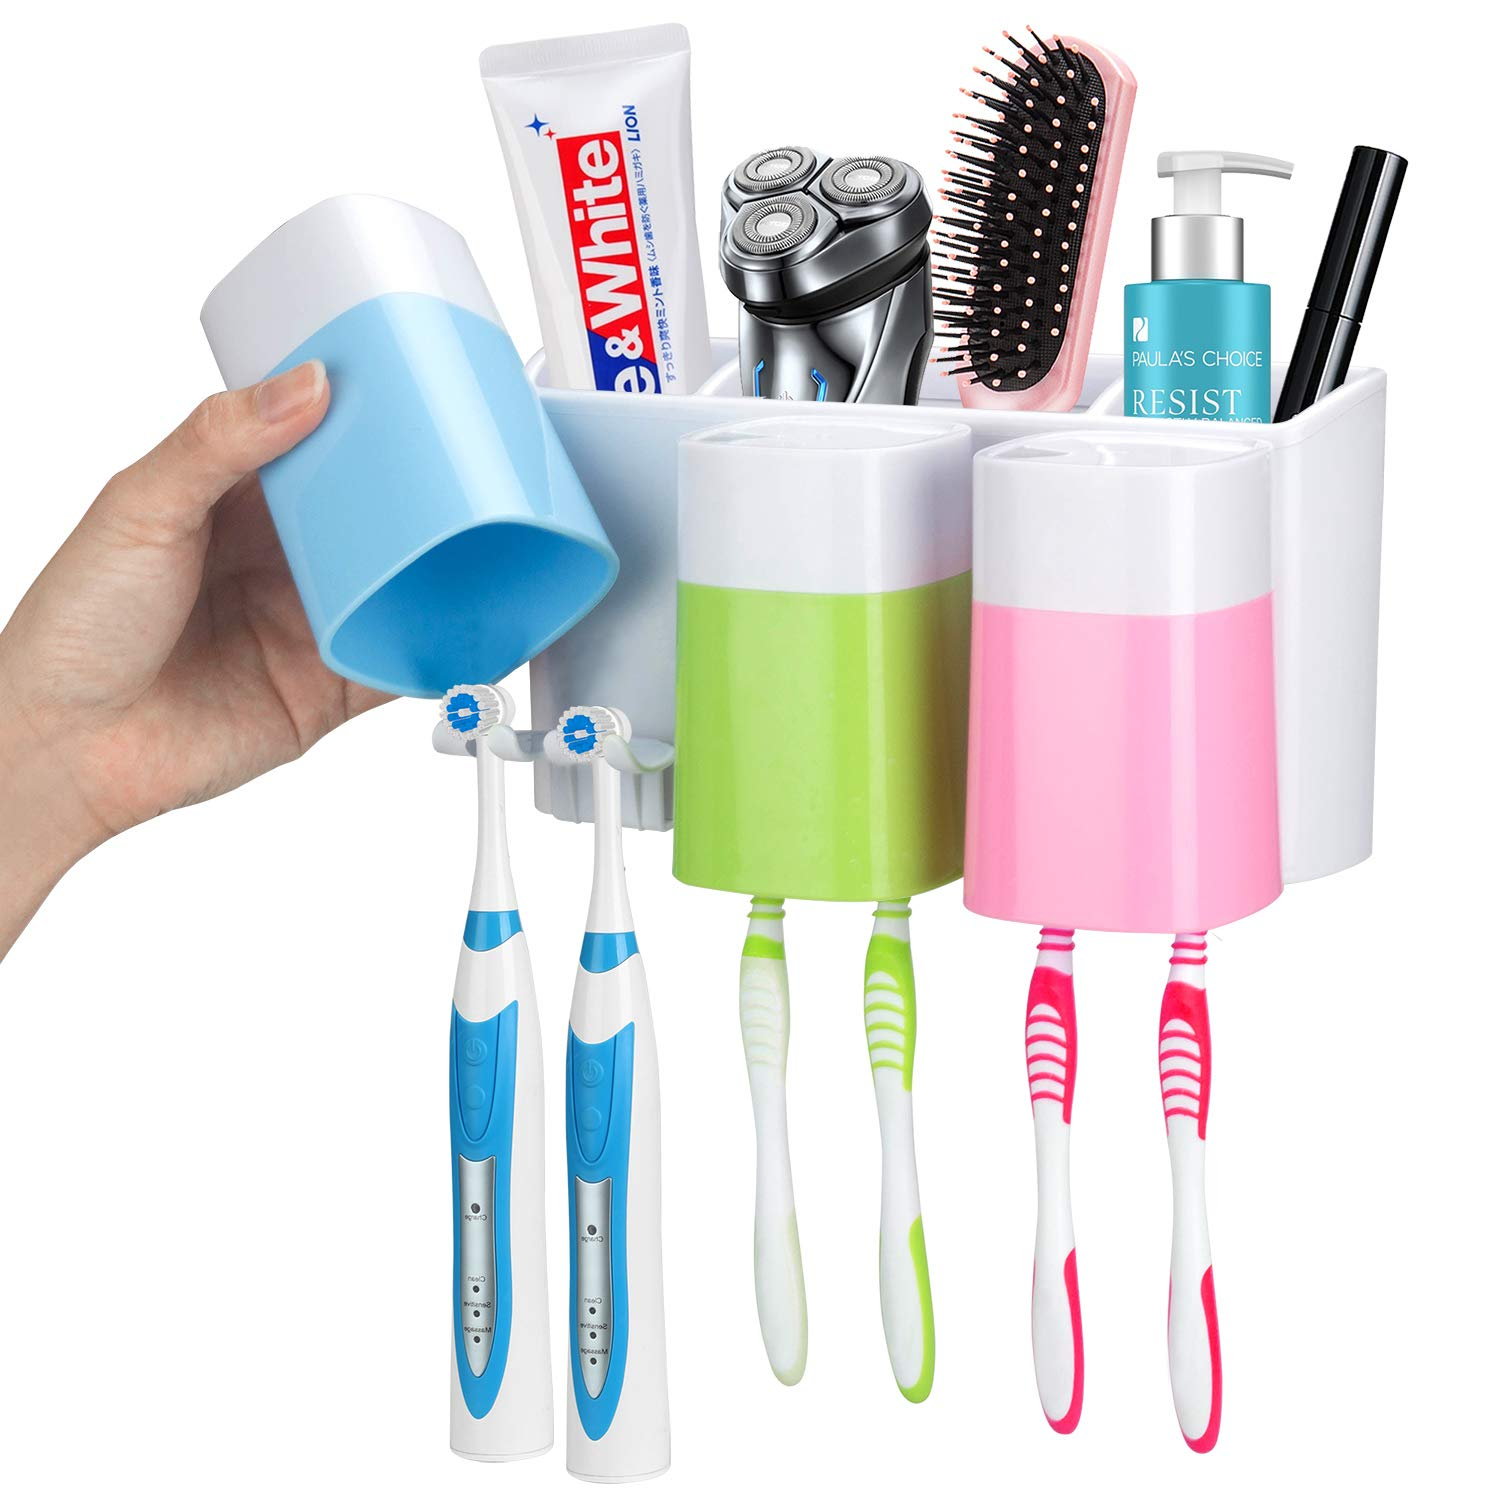 iHave Toothbrush Holder Wall Mounted with Large Capacity,Dustproof,Drill Free,3 Cups&9 Hanging,Bathroom Storage Organizer for Kids Family Set by iHave